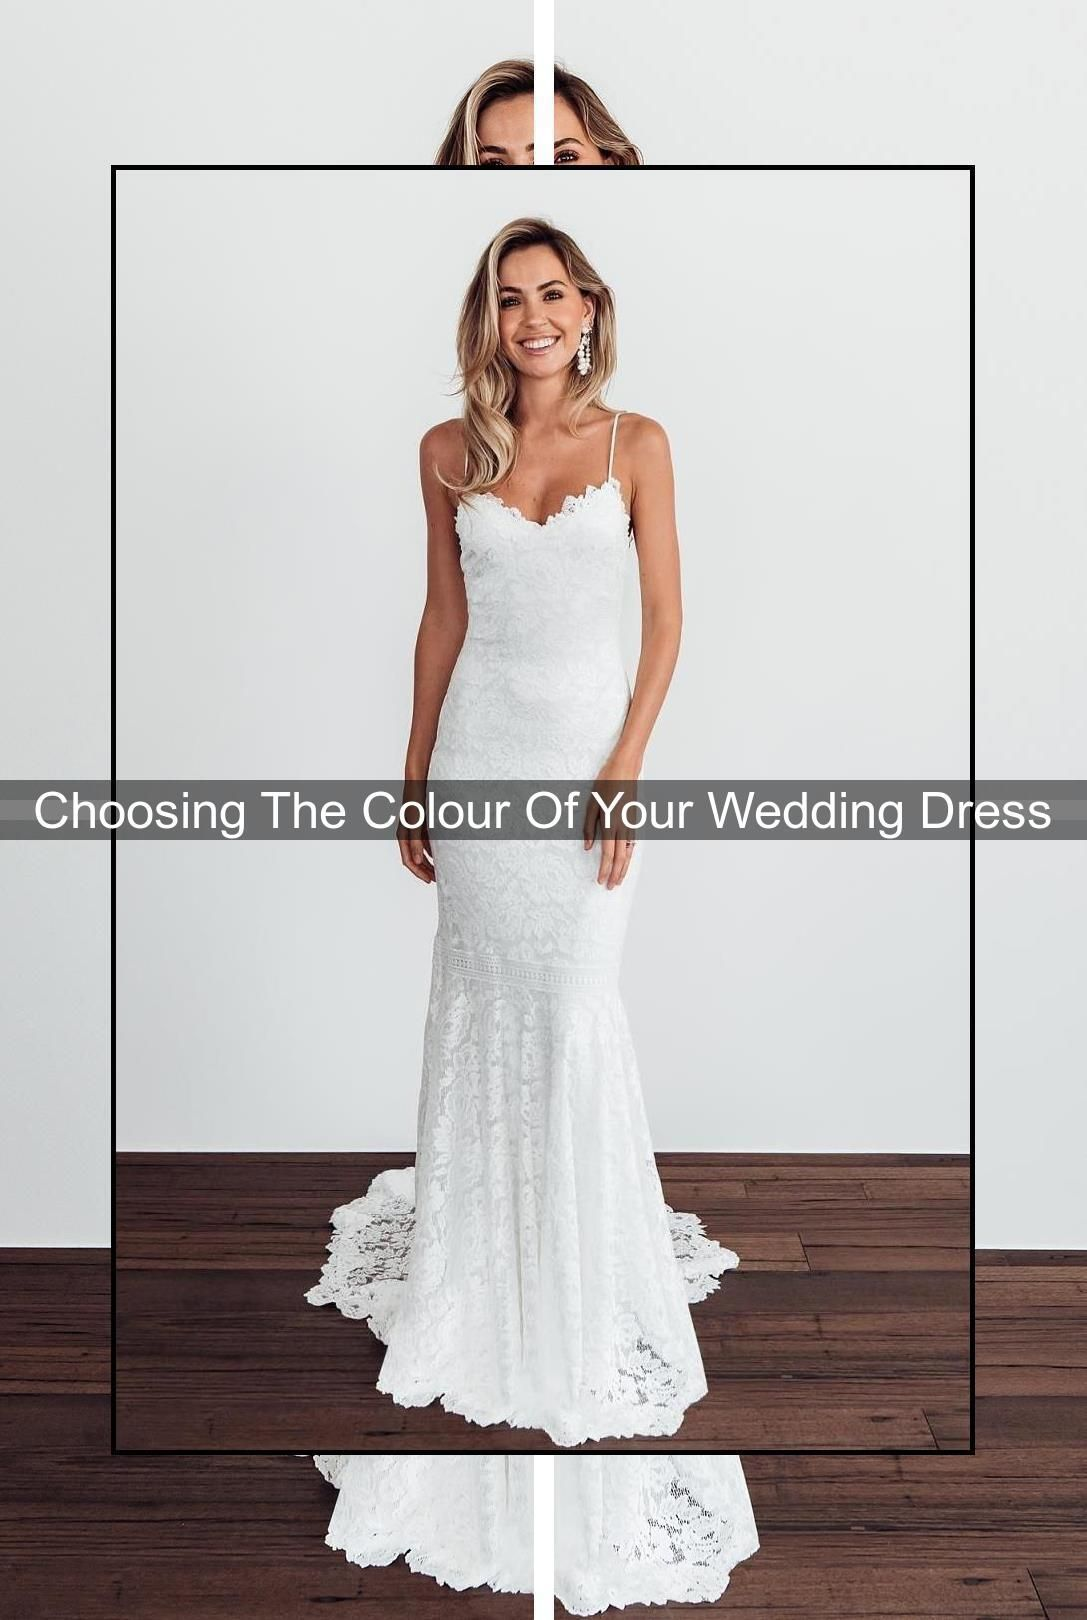 Wedding Store Second Hand Wedding Dresses Vera Wang Wedding Gowns Wedding Store Secon In 2020 Wedding Dresses Wedding Dresses Vera Wang Vera Wang Wedding Gowns